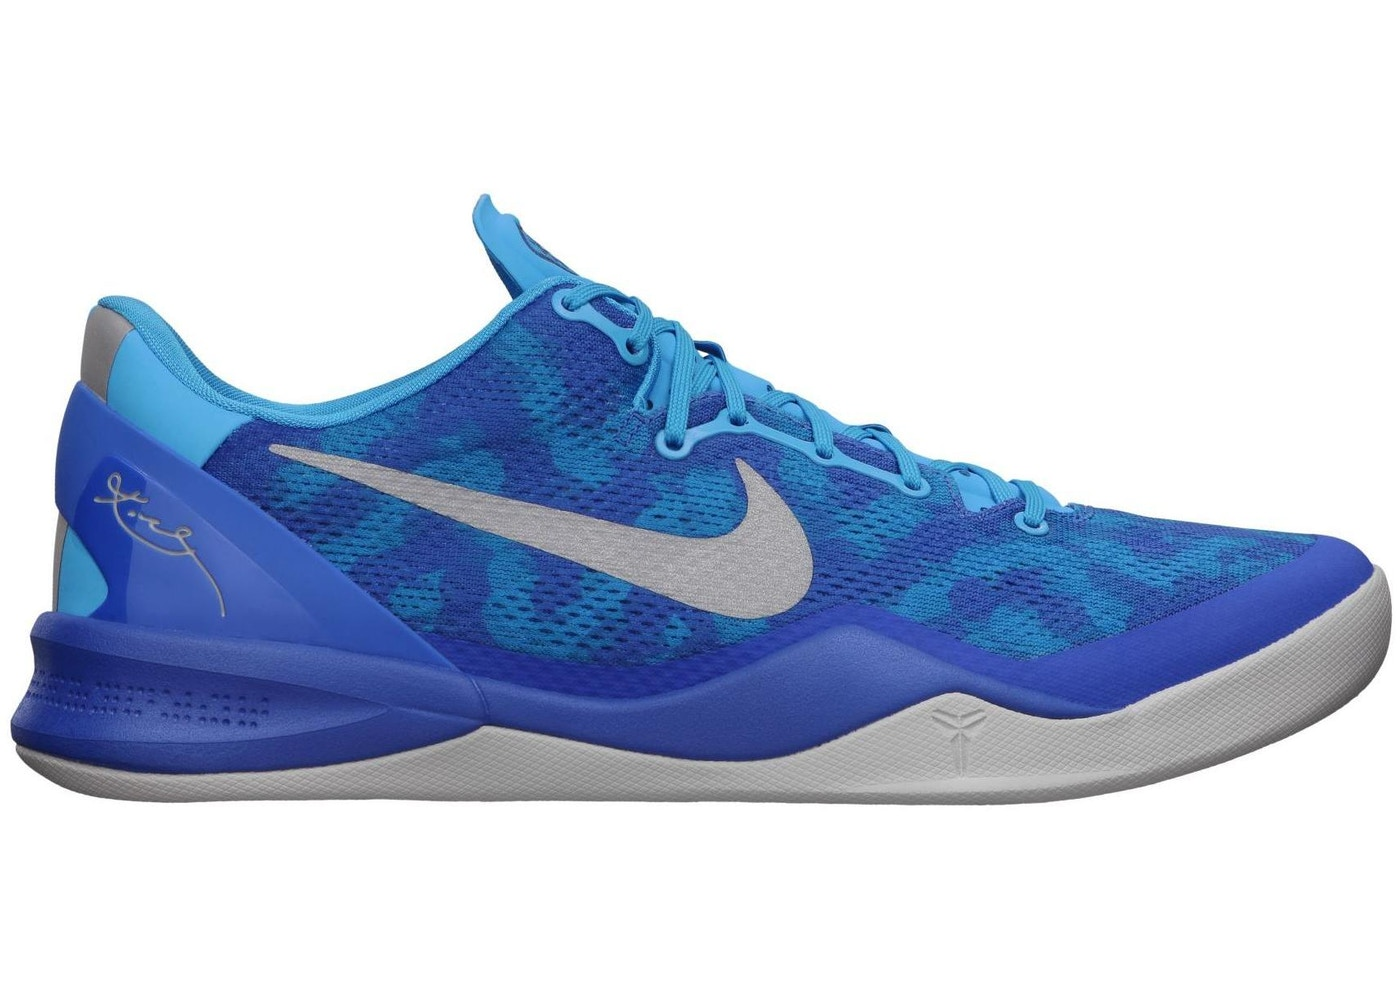 the latest 69169 63a8c Nike Kobe 8 Shoes - Average Sale Price